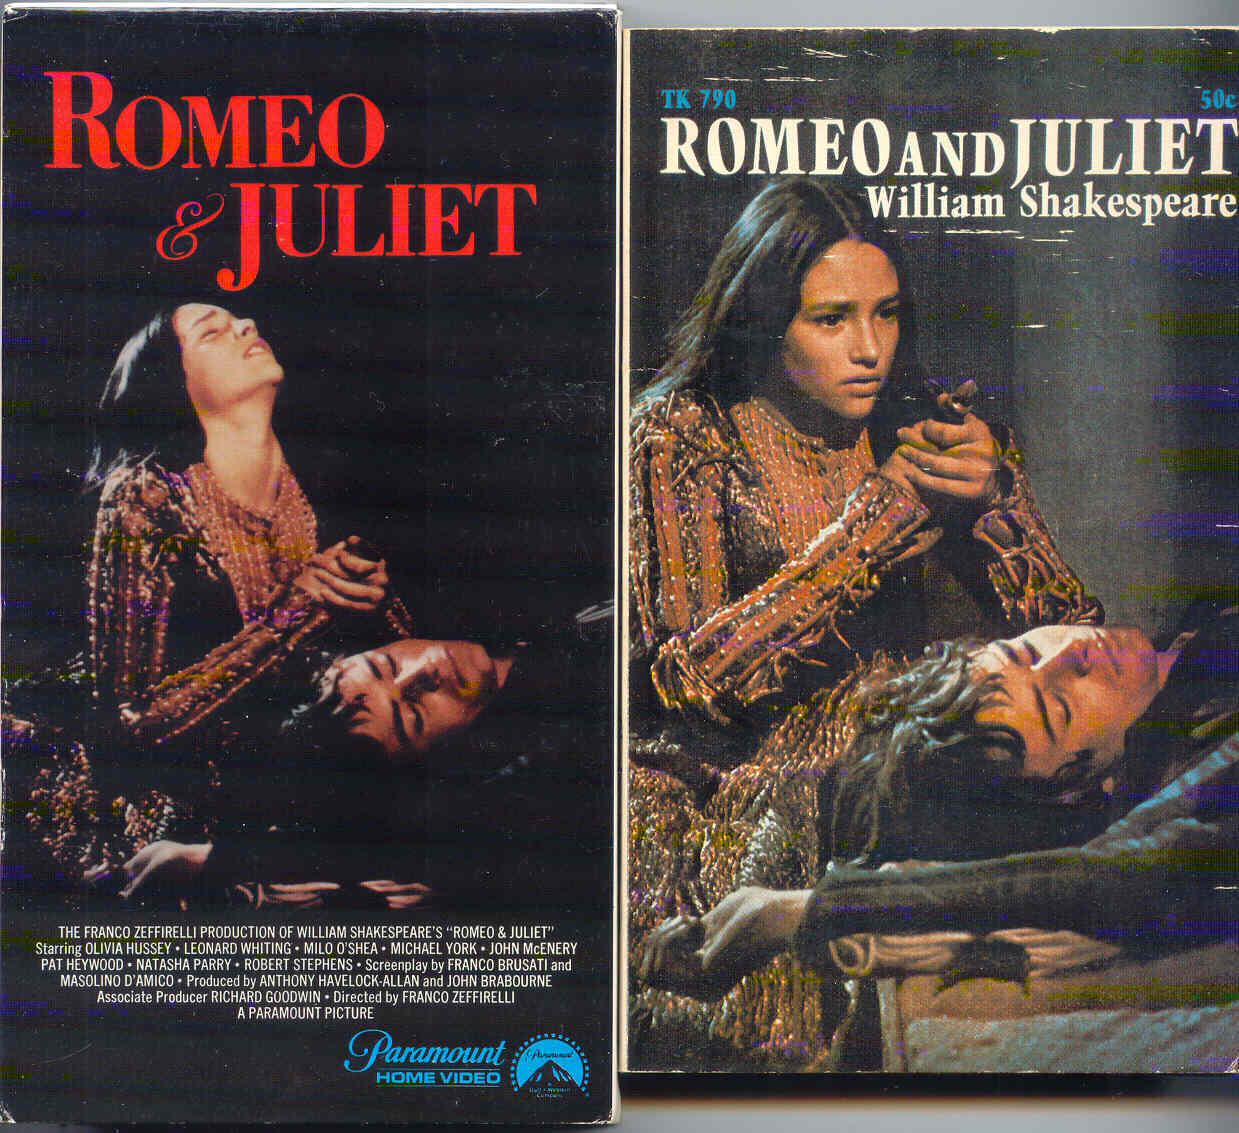 the movie version of the play romeo and juliet by william shakespeare